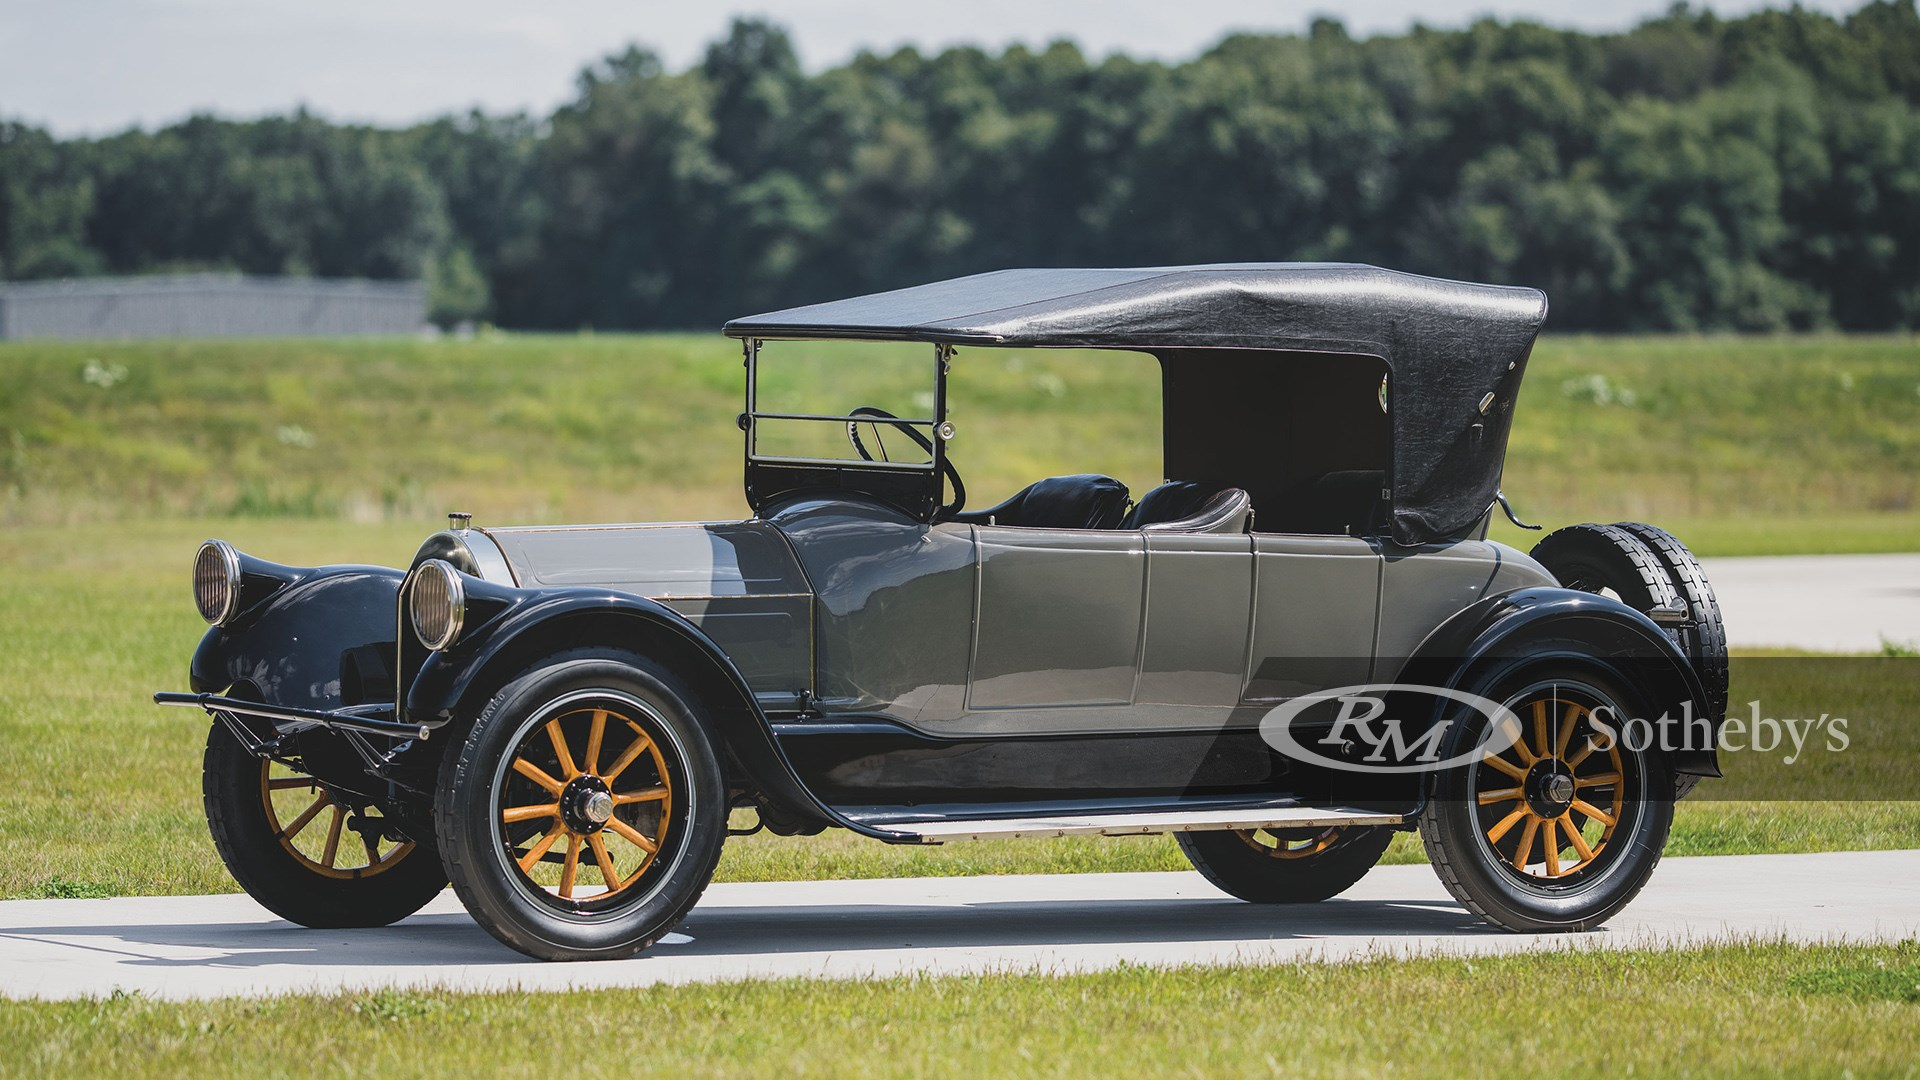 1919 Pierce-Arrow Series 31 Four-Passenger Roadster available at RM Sotheby's Amelia Island Live Auction 2021